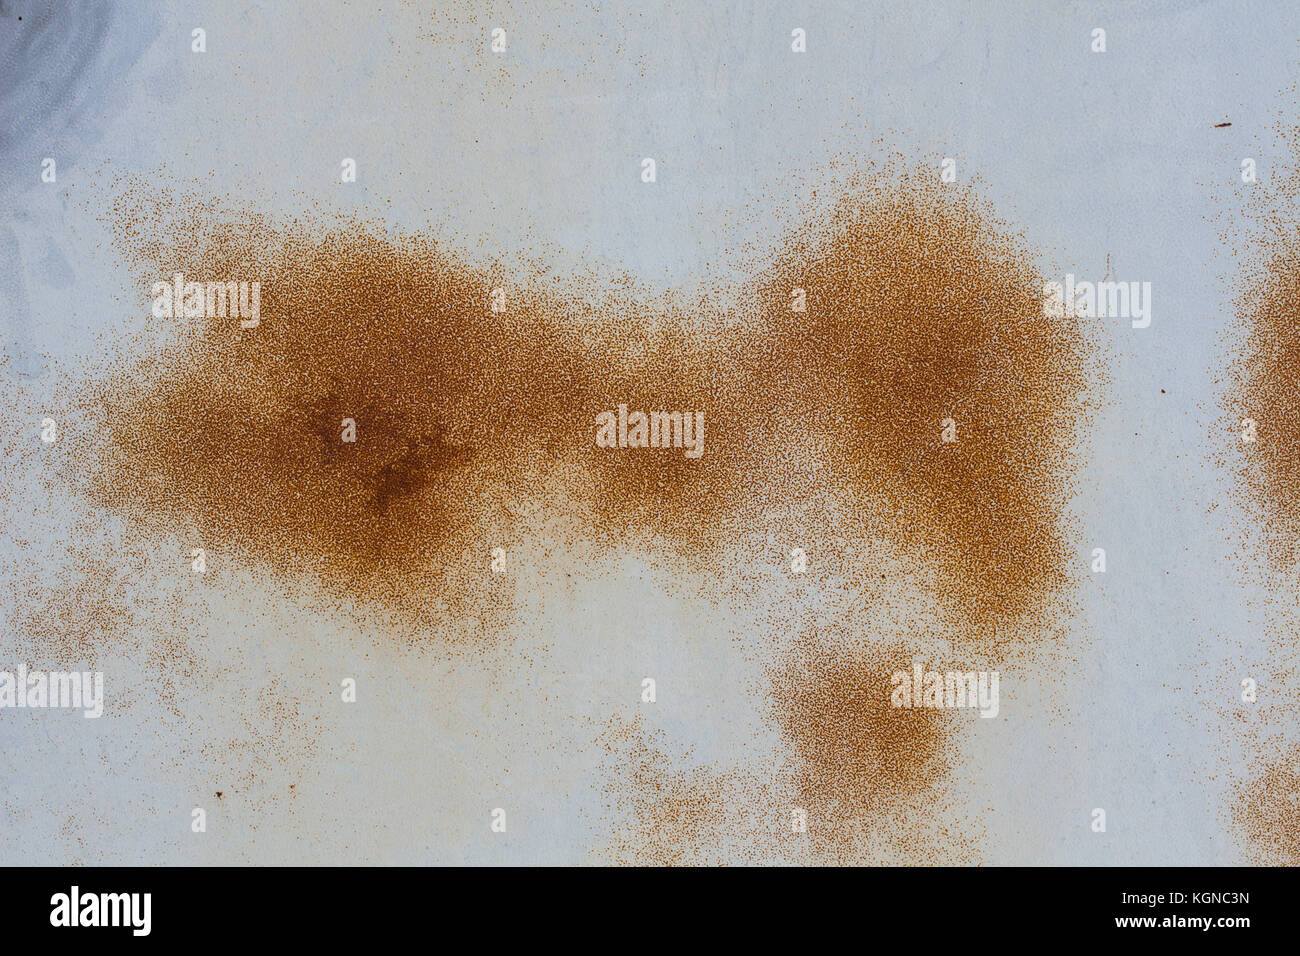 The Rust on metal surfaces for background - Stock Image